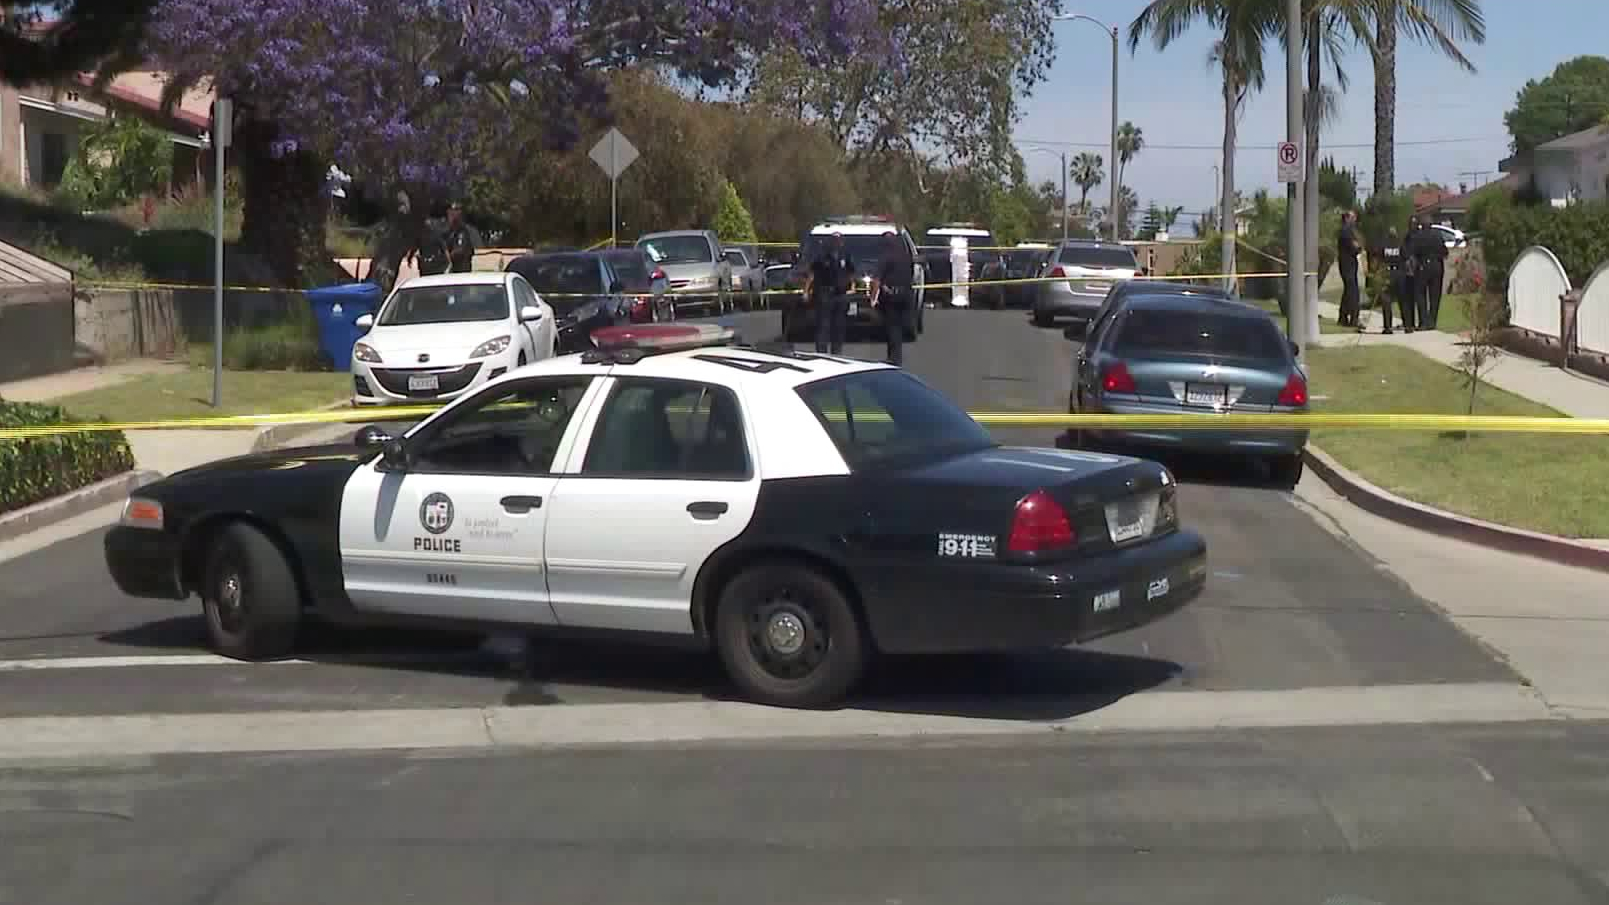 Investigators respond to the scene of a deadly police shooting in the Harbor Gateway neighborhood on May 14, 2020. (KTLA)